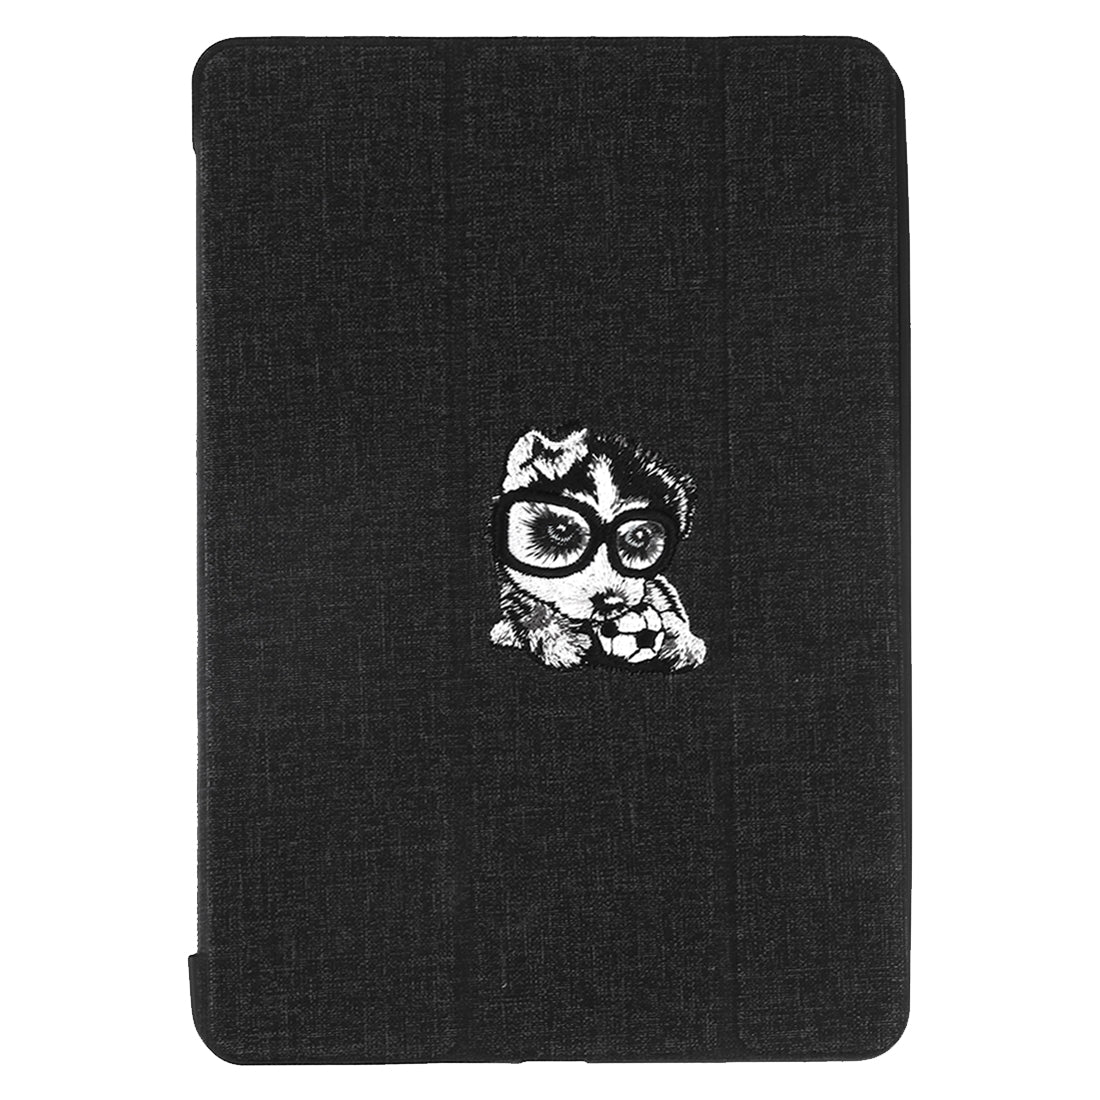 Embroidered cartoon Pattern Left and Right Flip Leather Case for iPad Mini 5 / 4 \